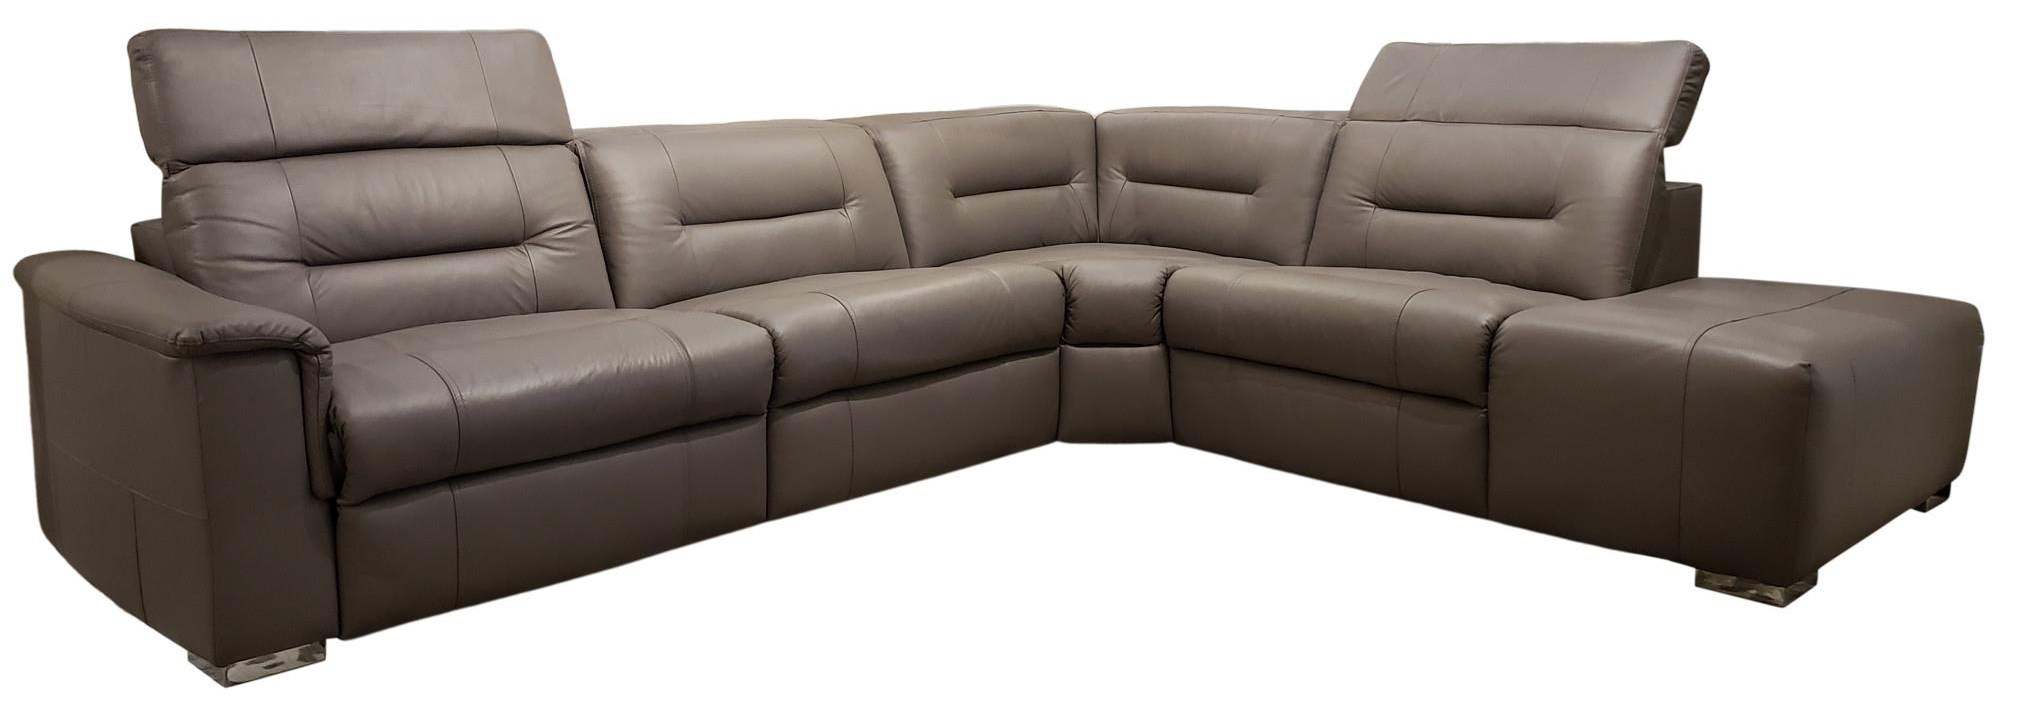 Keoni 4 Pc. Sectional by Palliser at Upper Room Home Furnishings